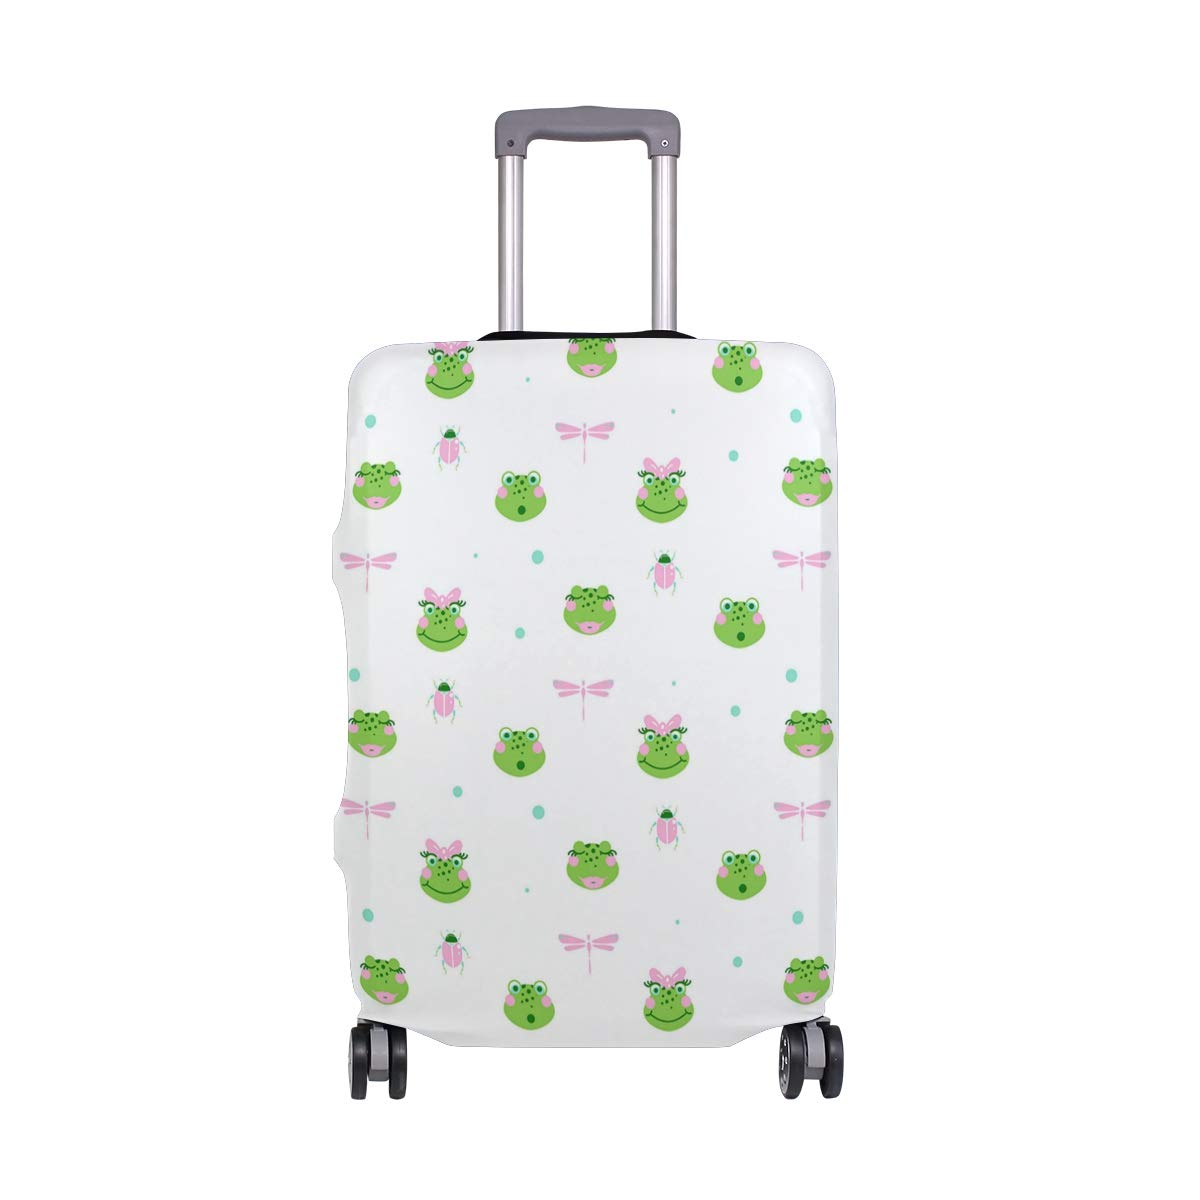 Dragonfly Crystal Necklace Colorful Travel Luggage Protector Case Suitcase Protector For Man/&Woman Fits 18-32 Inch Luggage